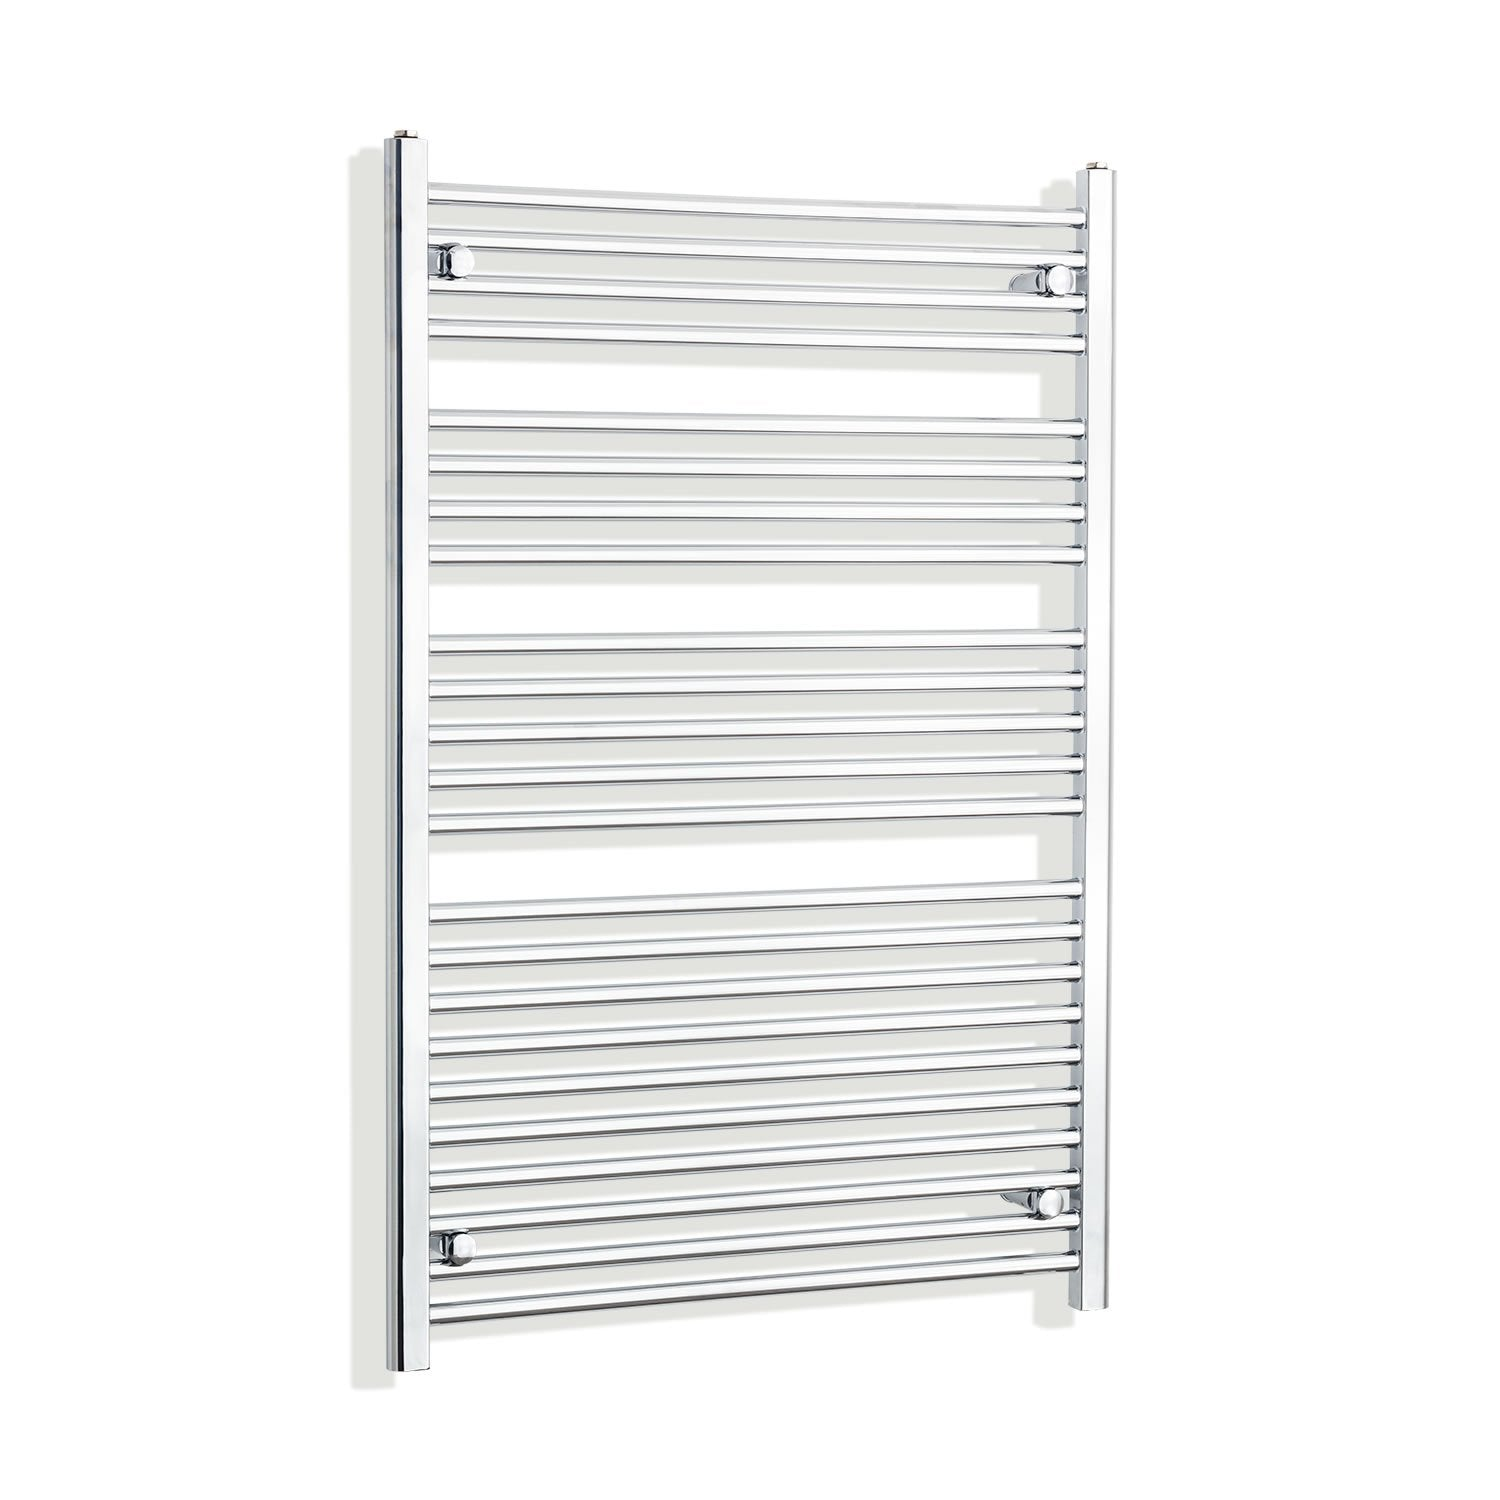 800mm Wide 1200mm High Flat Chrome Heated Towel Rail Radiator HTR,With Straight Valve